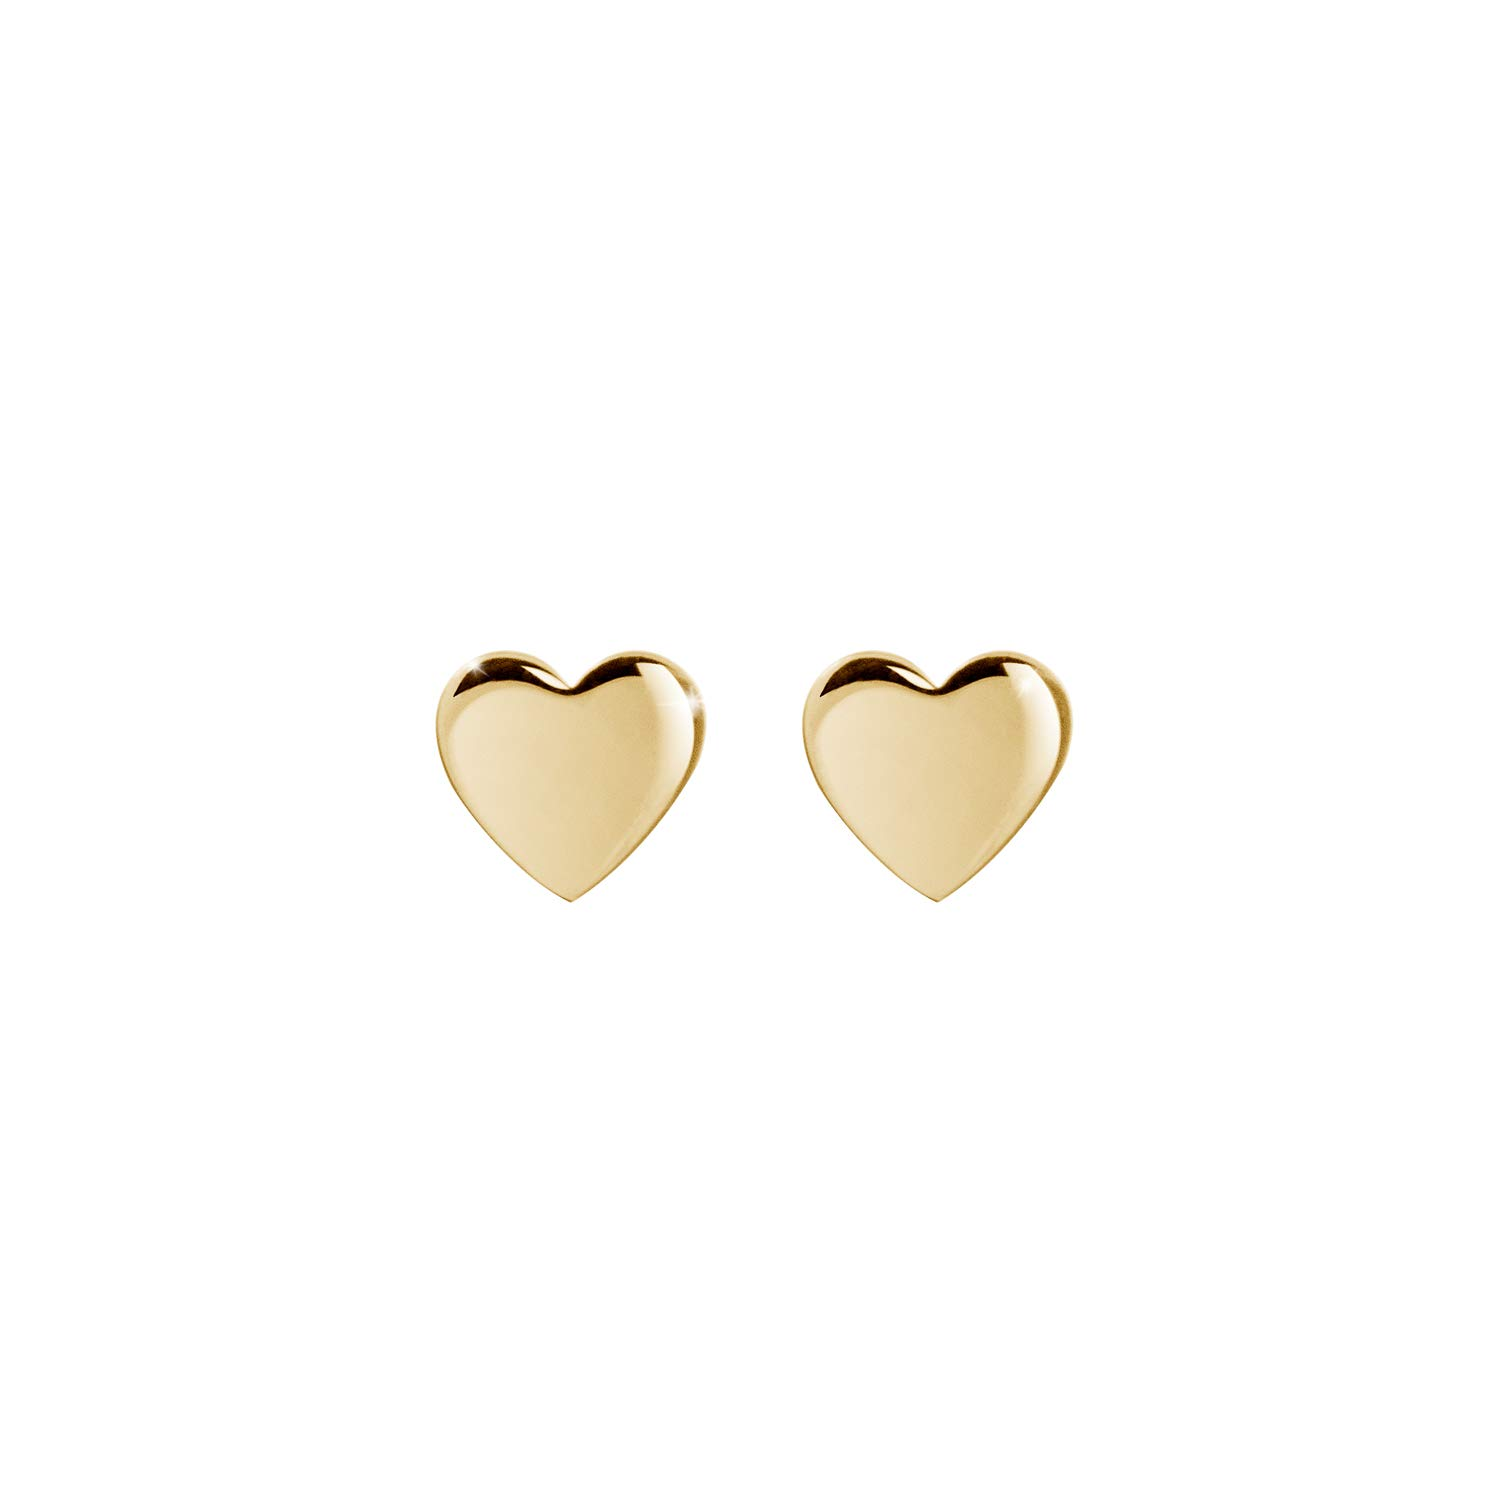 Tiny Heart Stud Earrings Solid White Gold Heart Studs Mini Heart Studs Best Gift For Her Minimalist Everyday Jewelry LITTIONARY